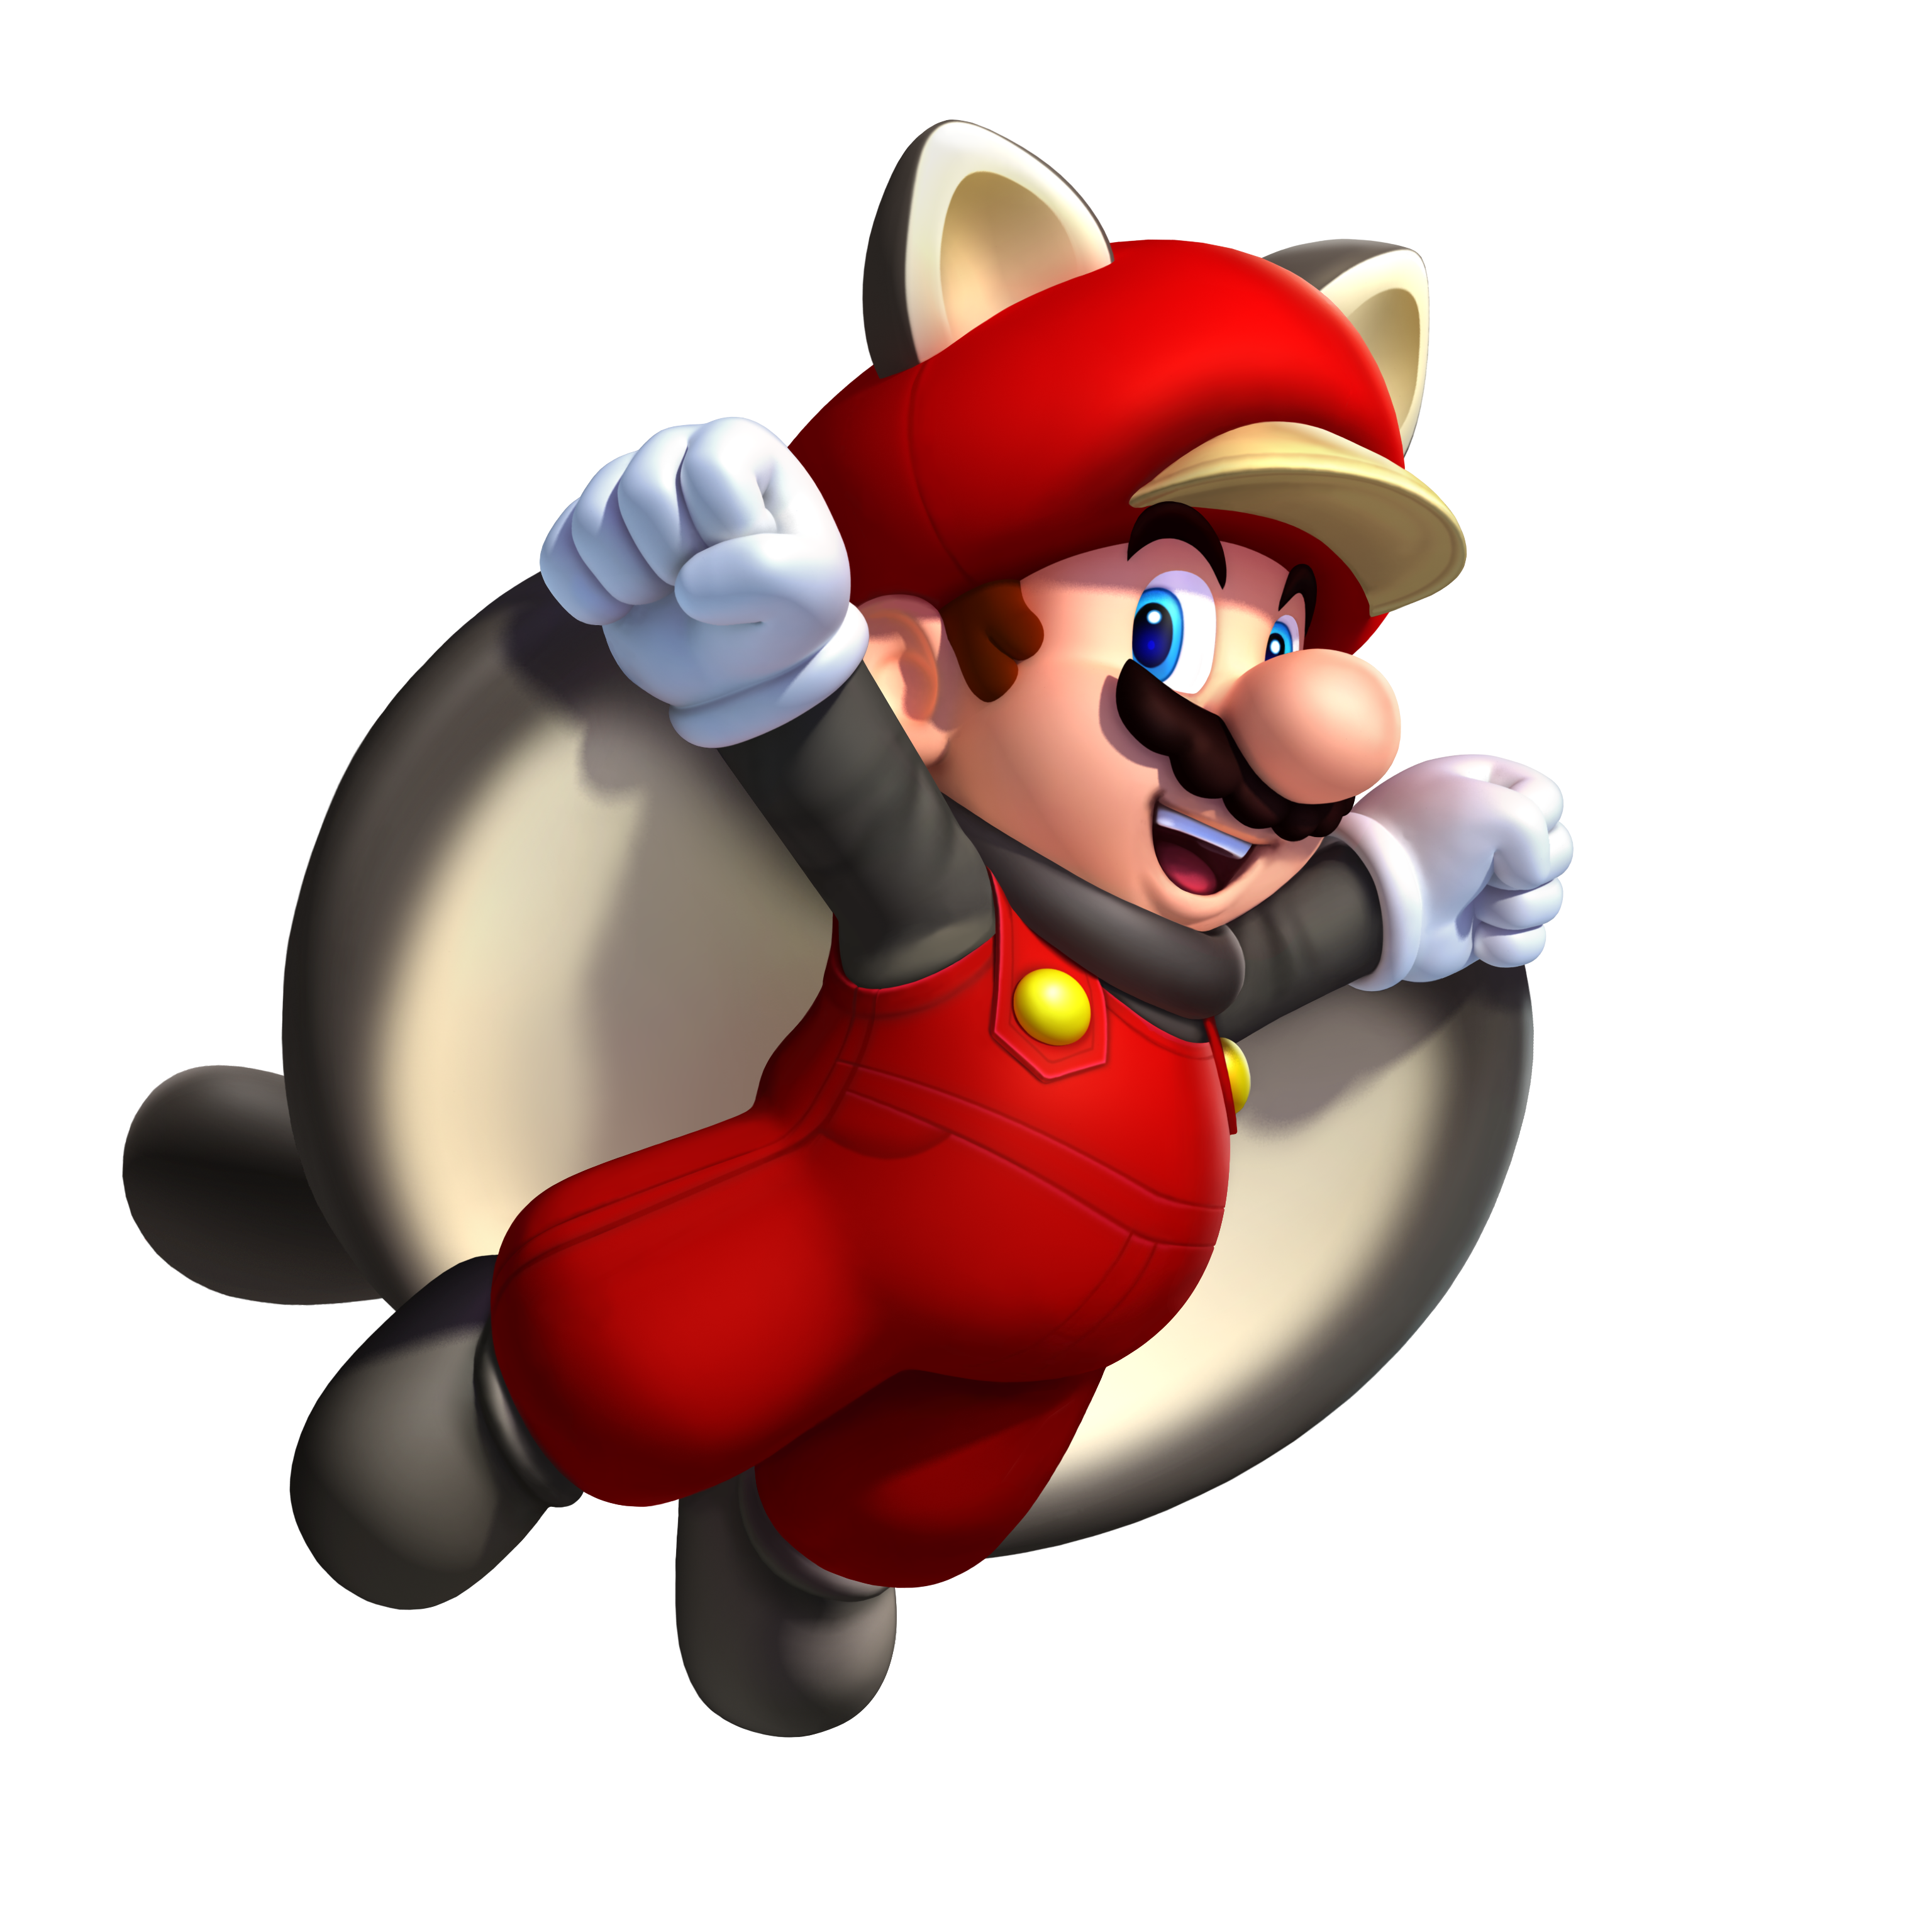 Flying Squirrel Mario